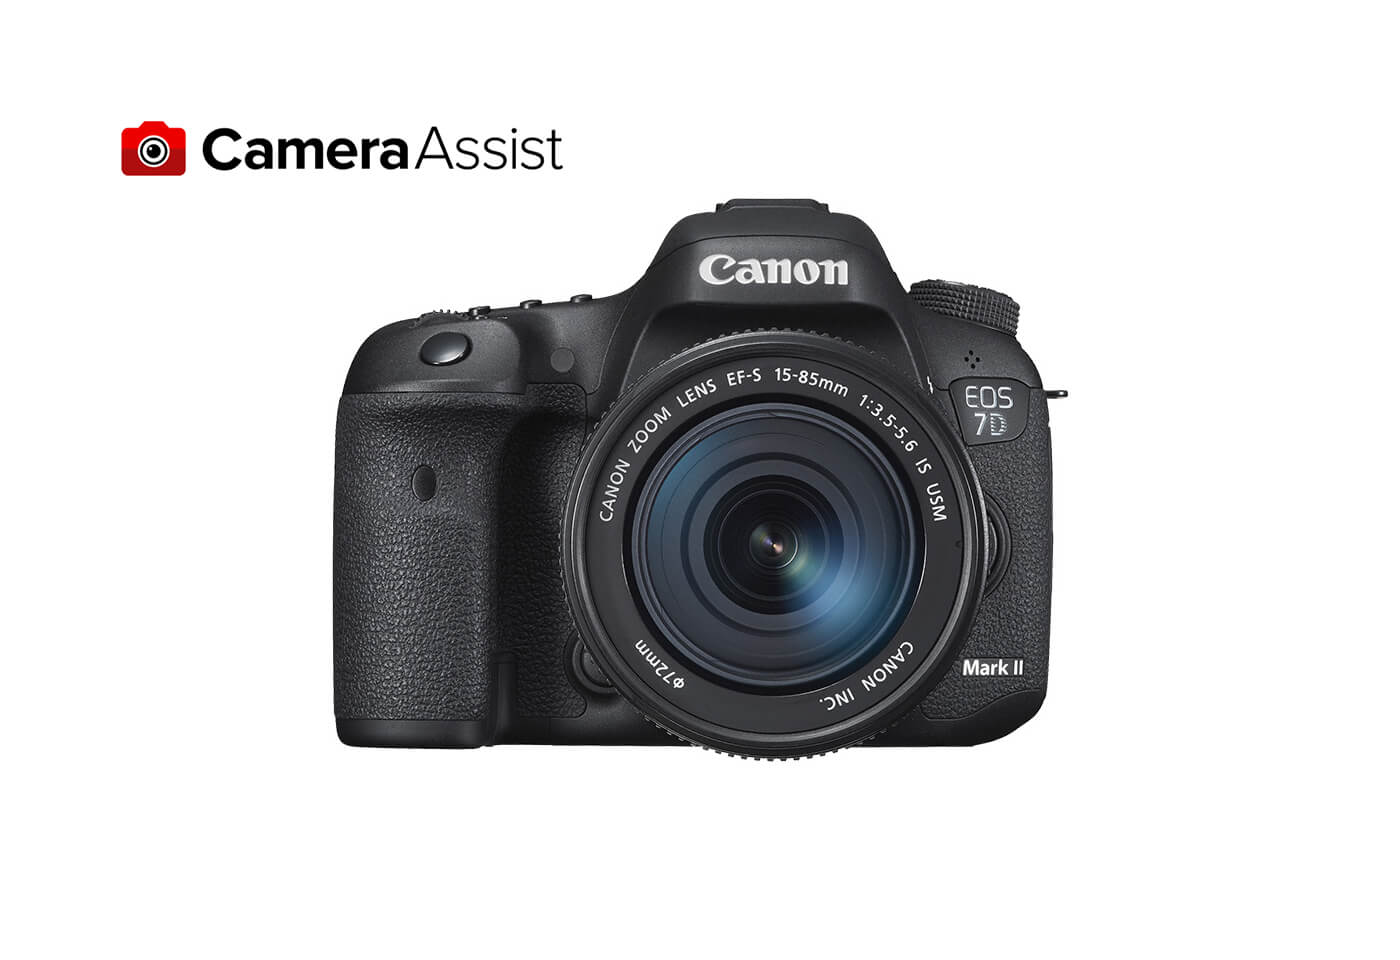 EOS 7D Mark II front image